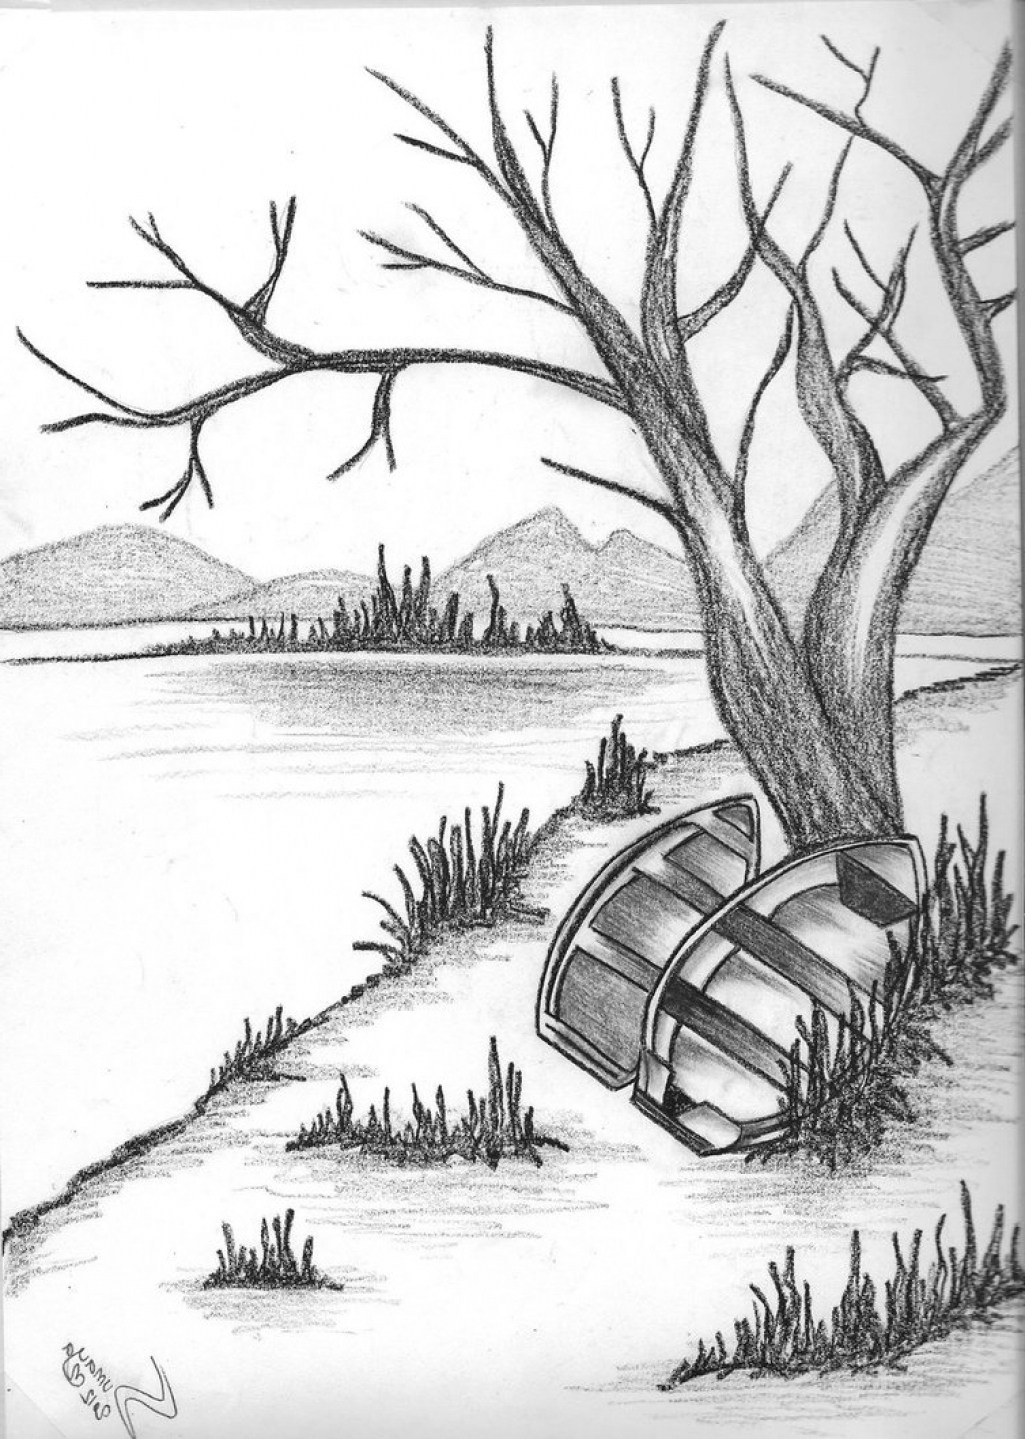 1025x1439 Images For Scenery Drawing Allofpicts